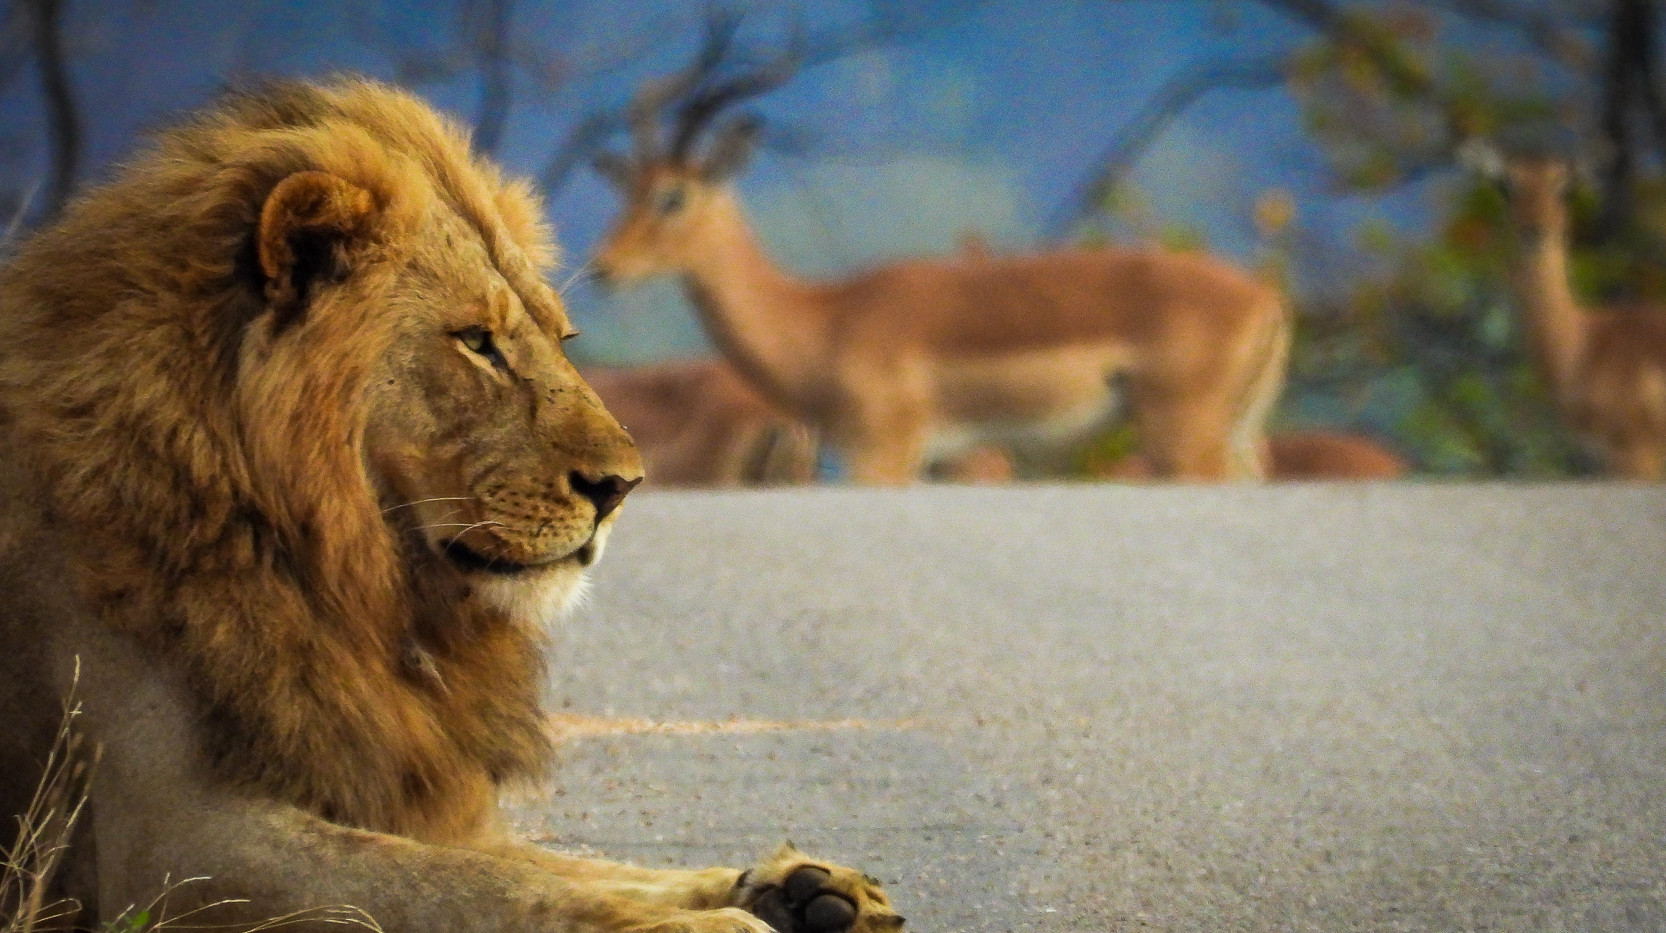 Male lion with Impala passing by in background